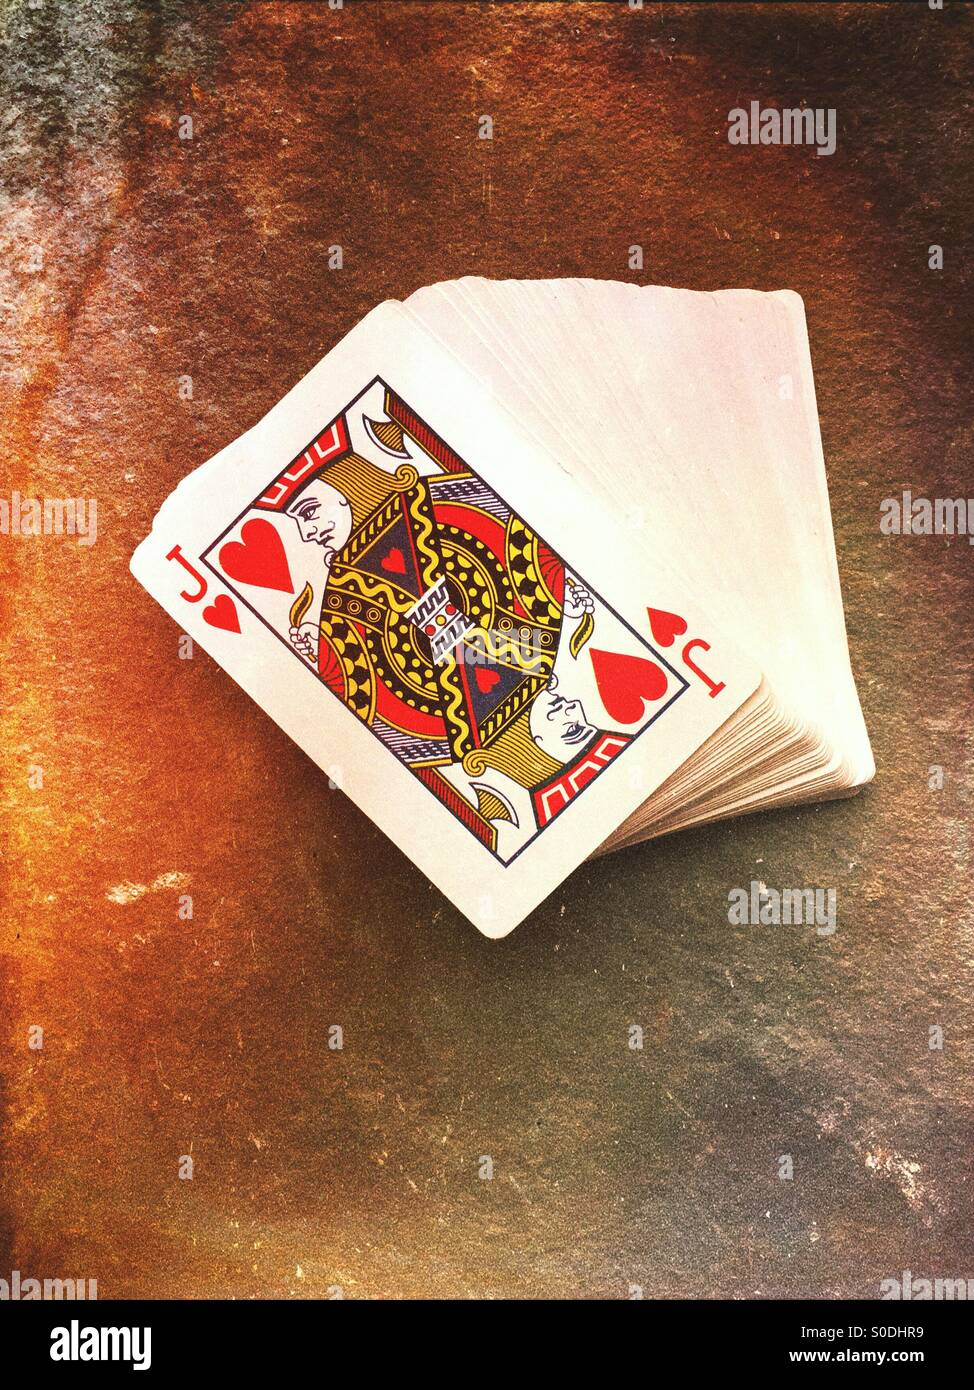 Playing cards deck - Stock Image